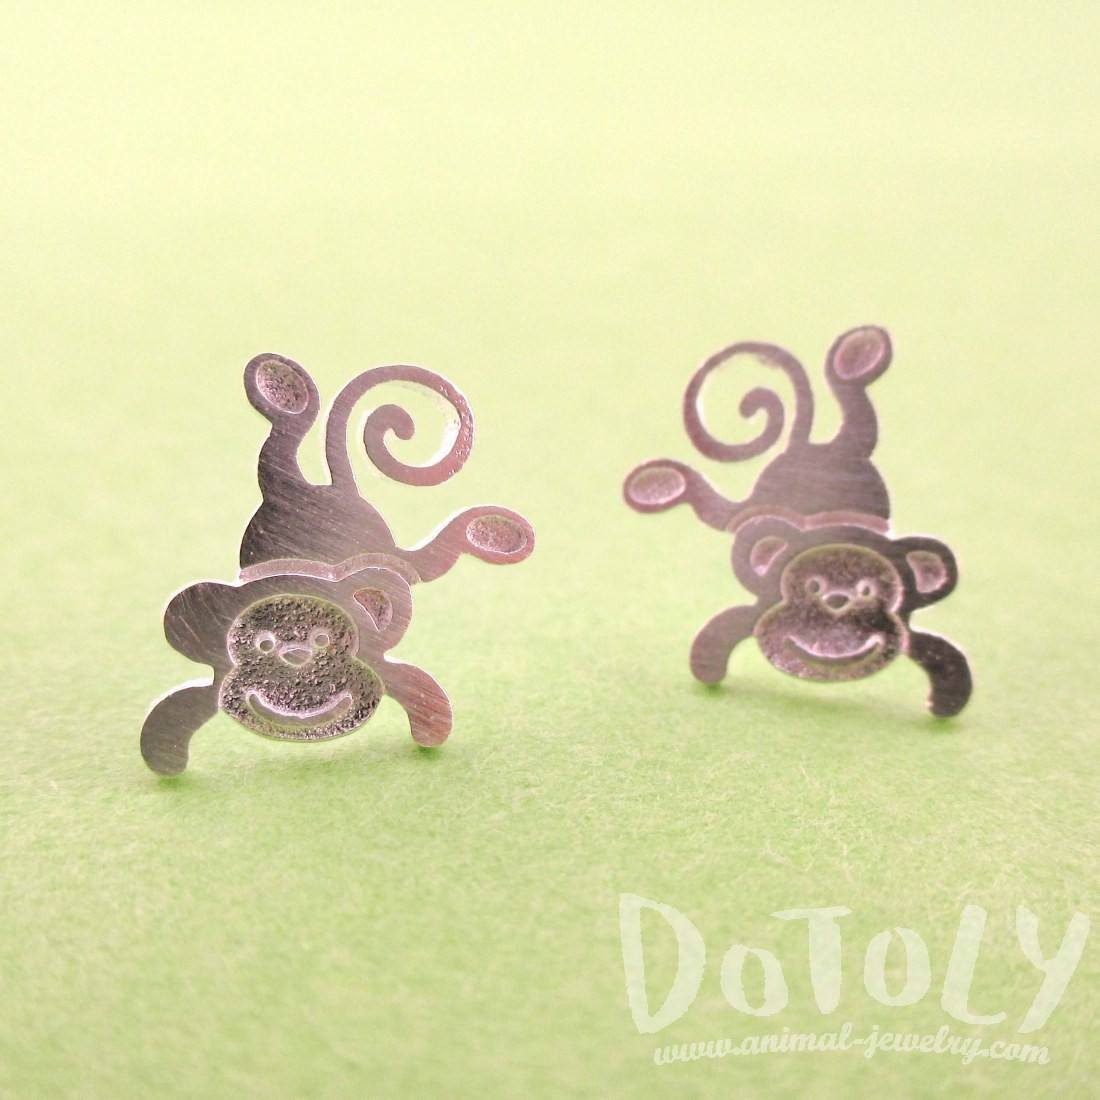 Cute Monkey Chimpanzee Shaped Allergy Free Stud Earrings in Silver